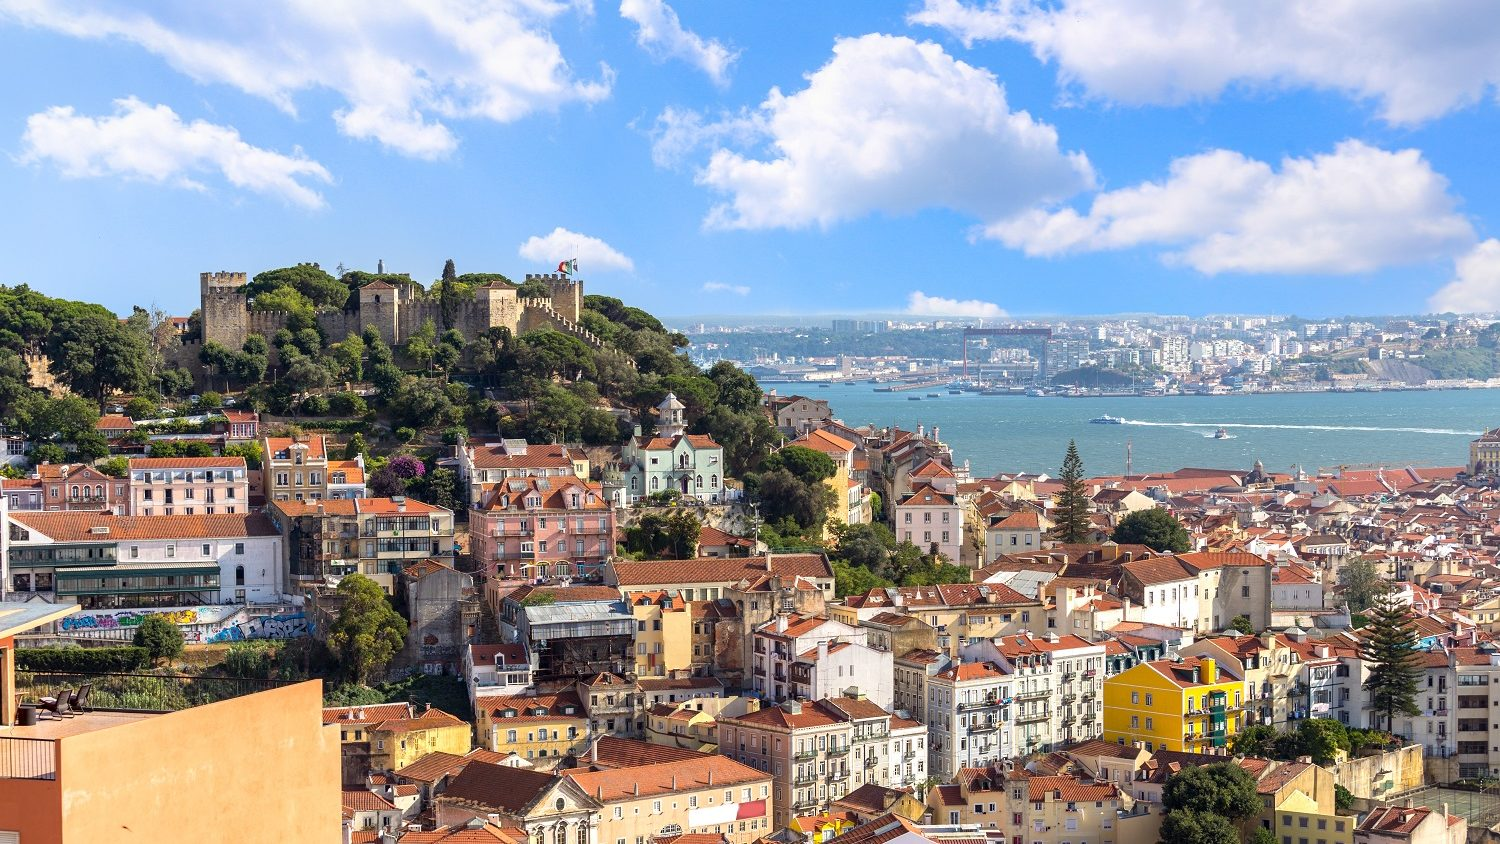 Real Estate Investment in Lisbon Breaks New Record in 2018, at €5.92 Billion